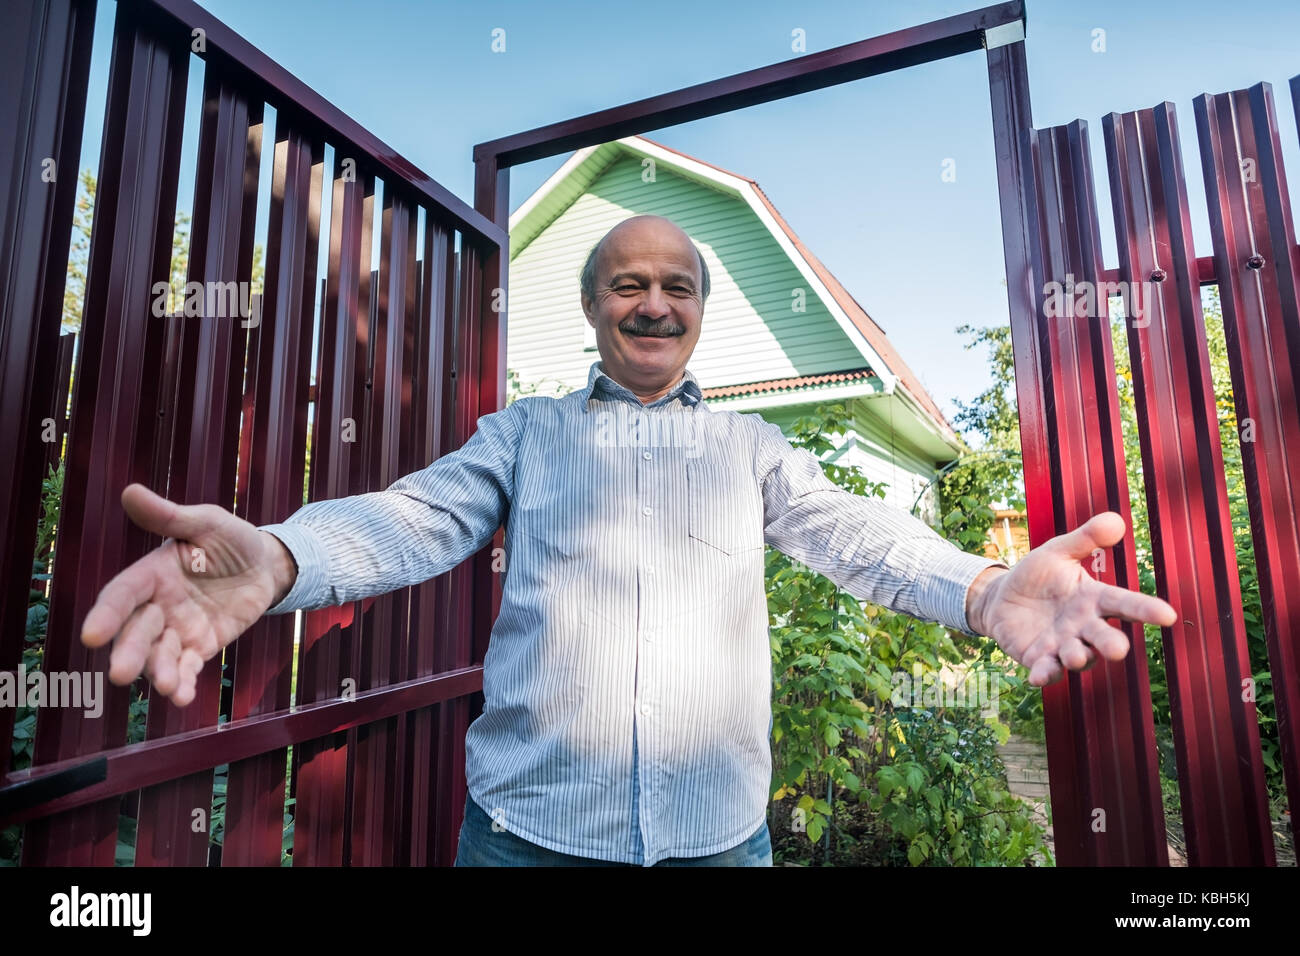 An elderly man meets guests at a red metal fence waiting for guests. - Stock Image